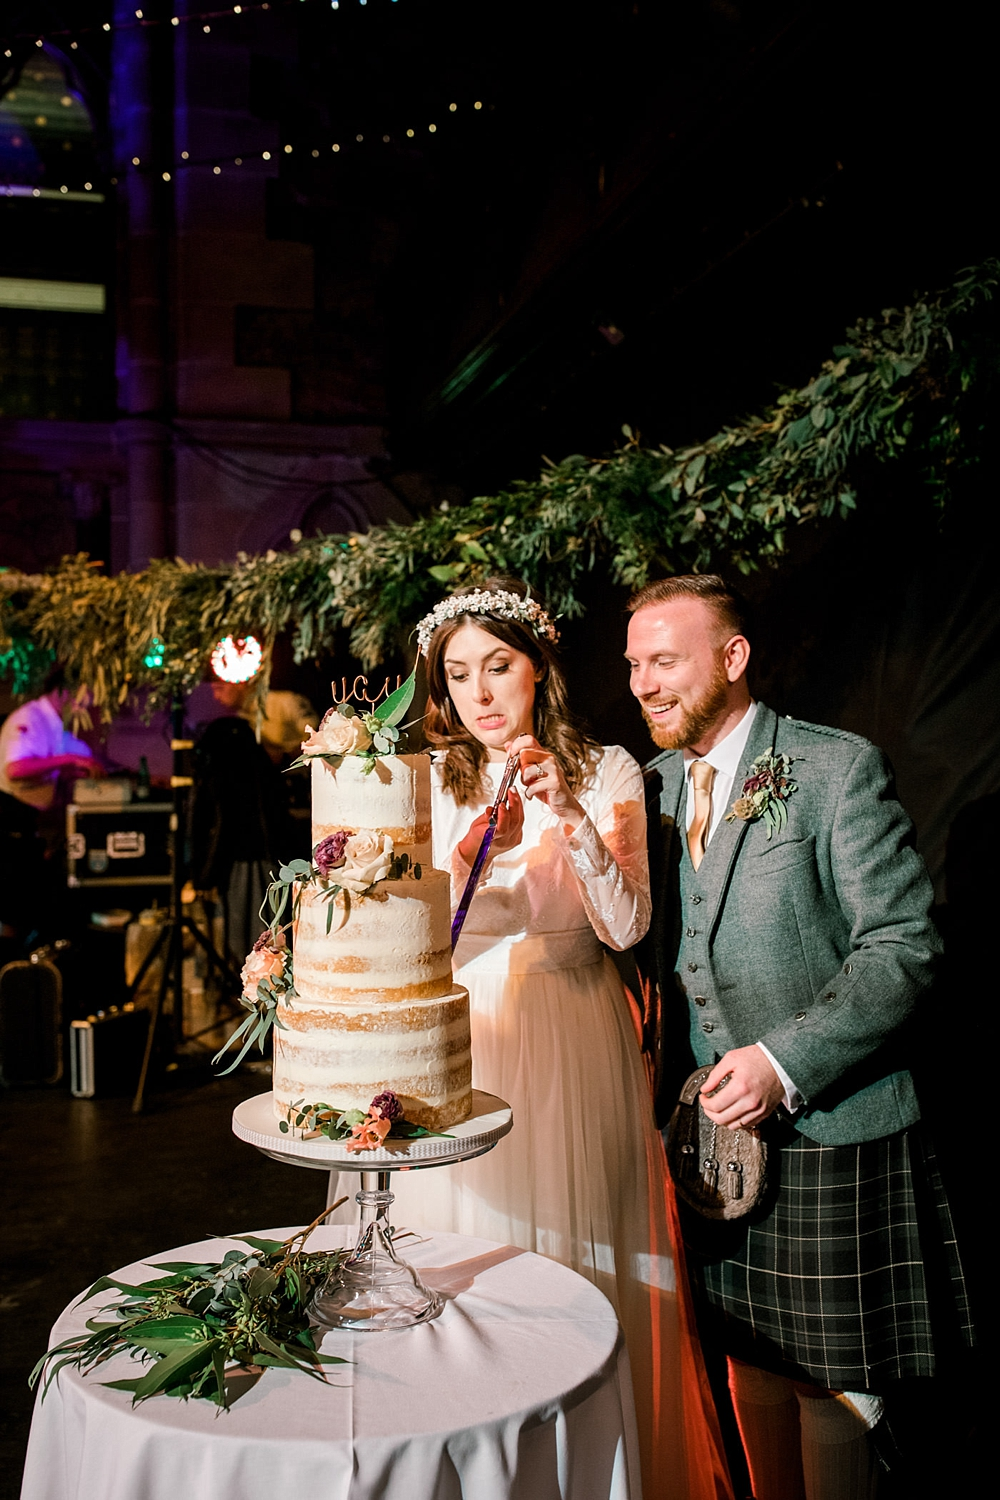 Autumn wedding at Cottiers 264.jpg